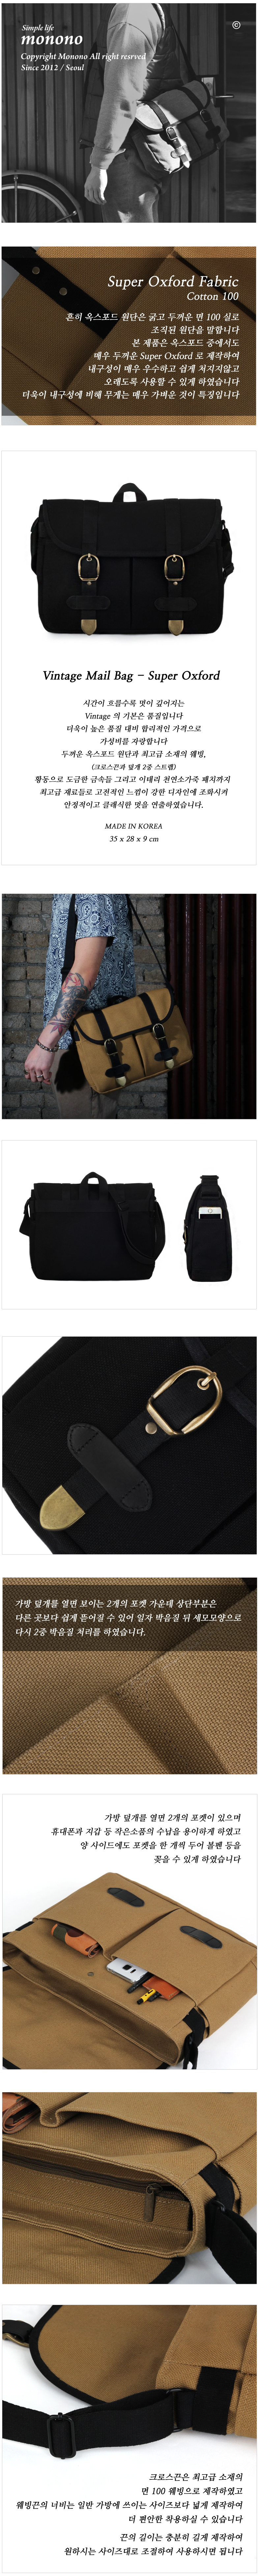 모노노(MONONO) Super Oxford Vintage Mail Bag - All Black